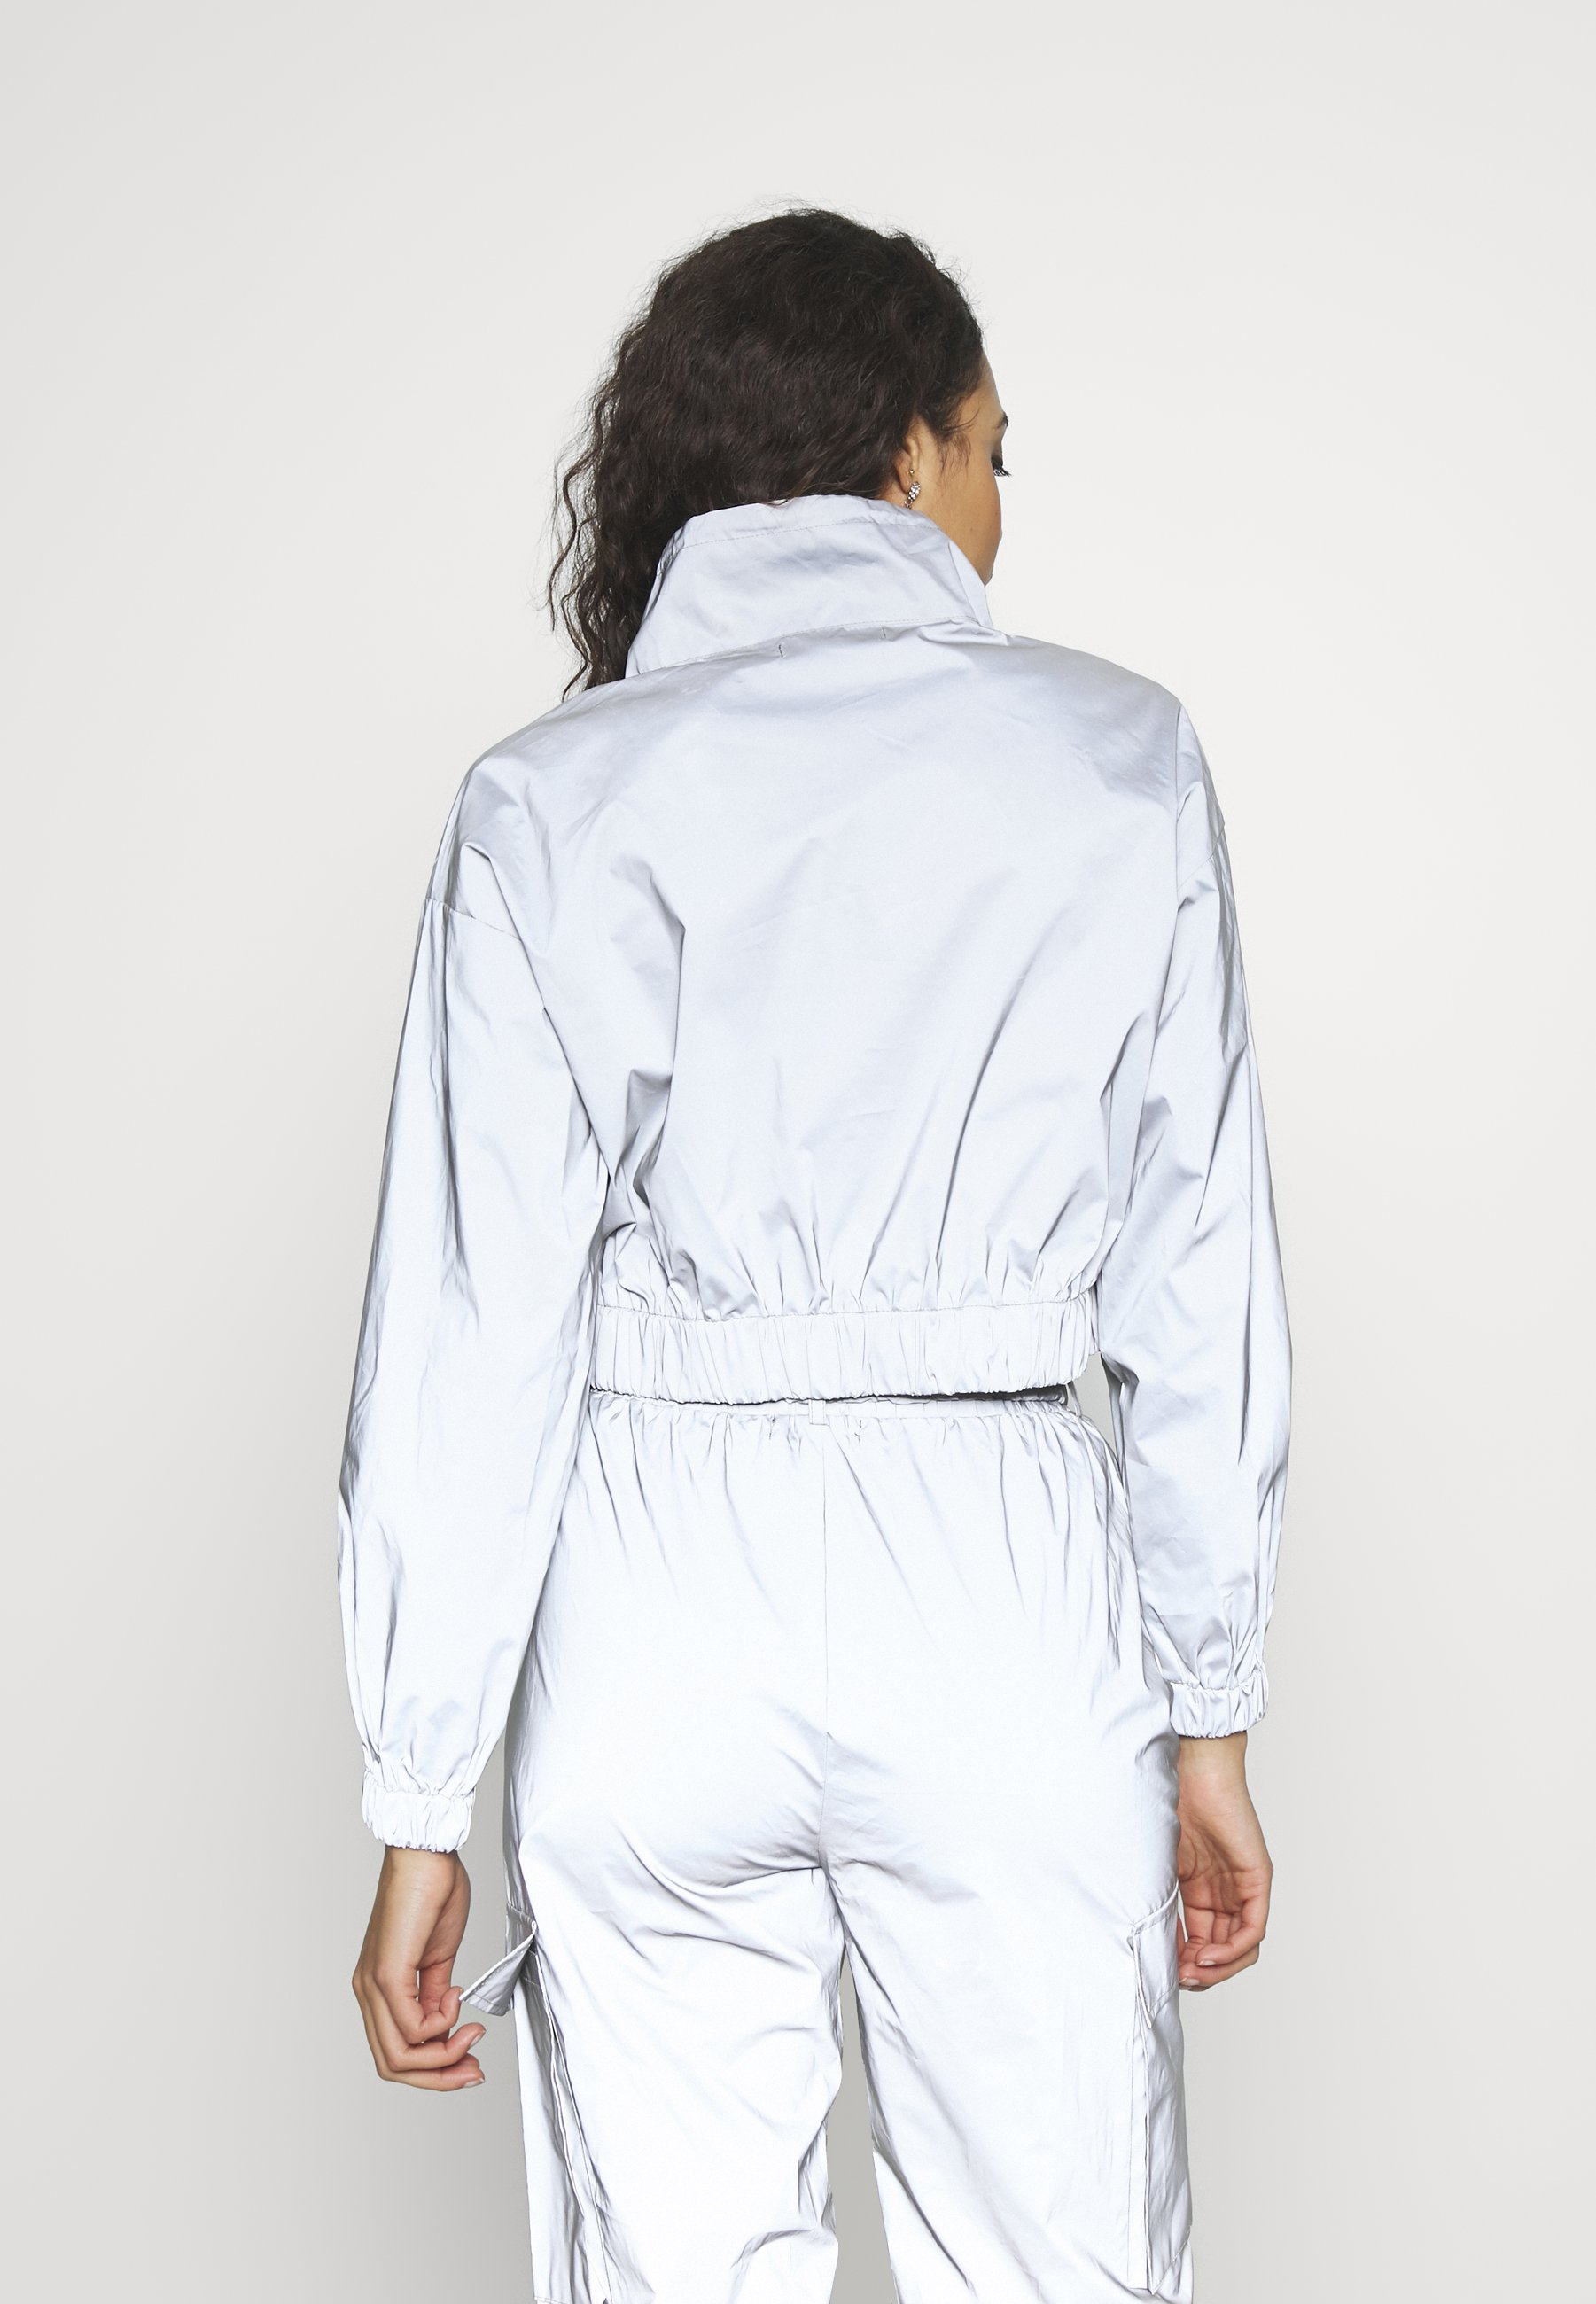 Missguided Code Create Reflective Jacket - Giacca Leggera Grey eugj7